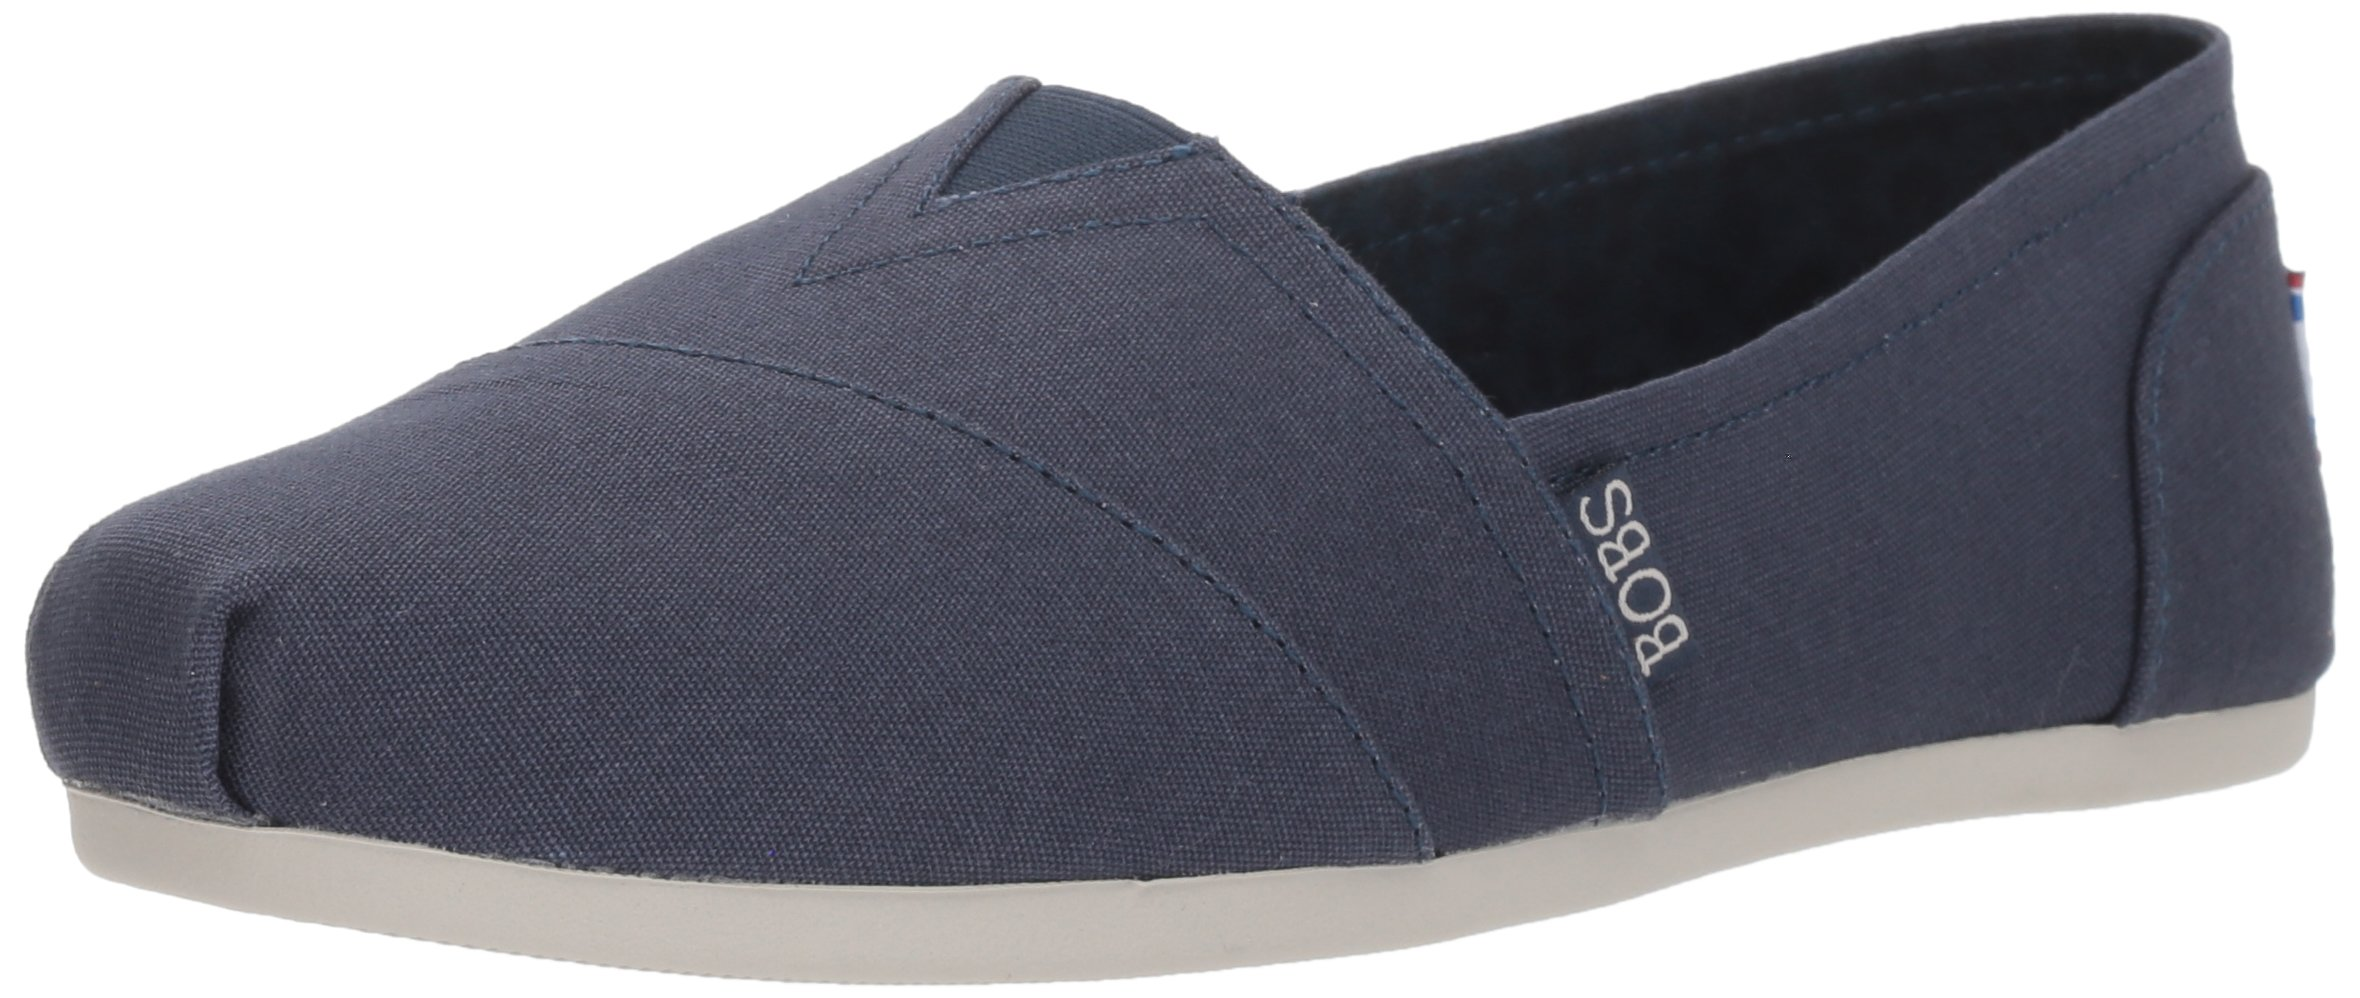 Skechers BOBS from Women's Bobs Plush-Peace and Love Ballet Flat, Dark Navy, 7.5 M US